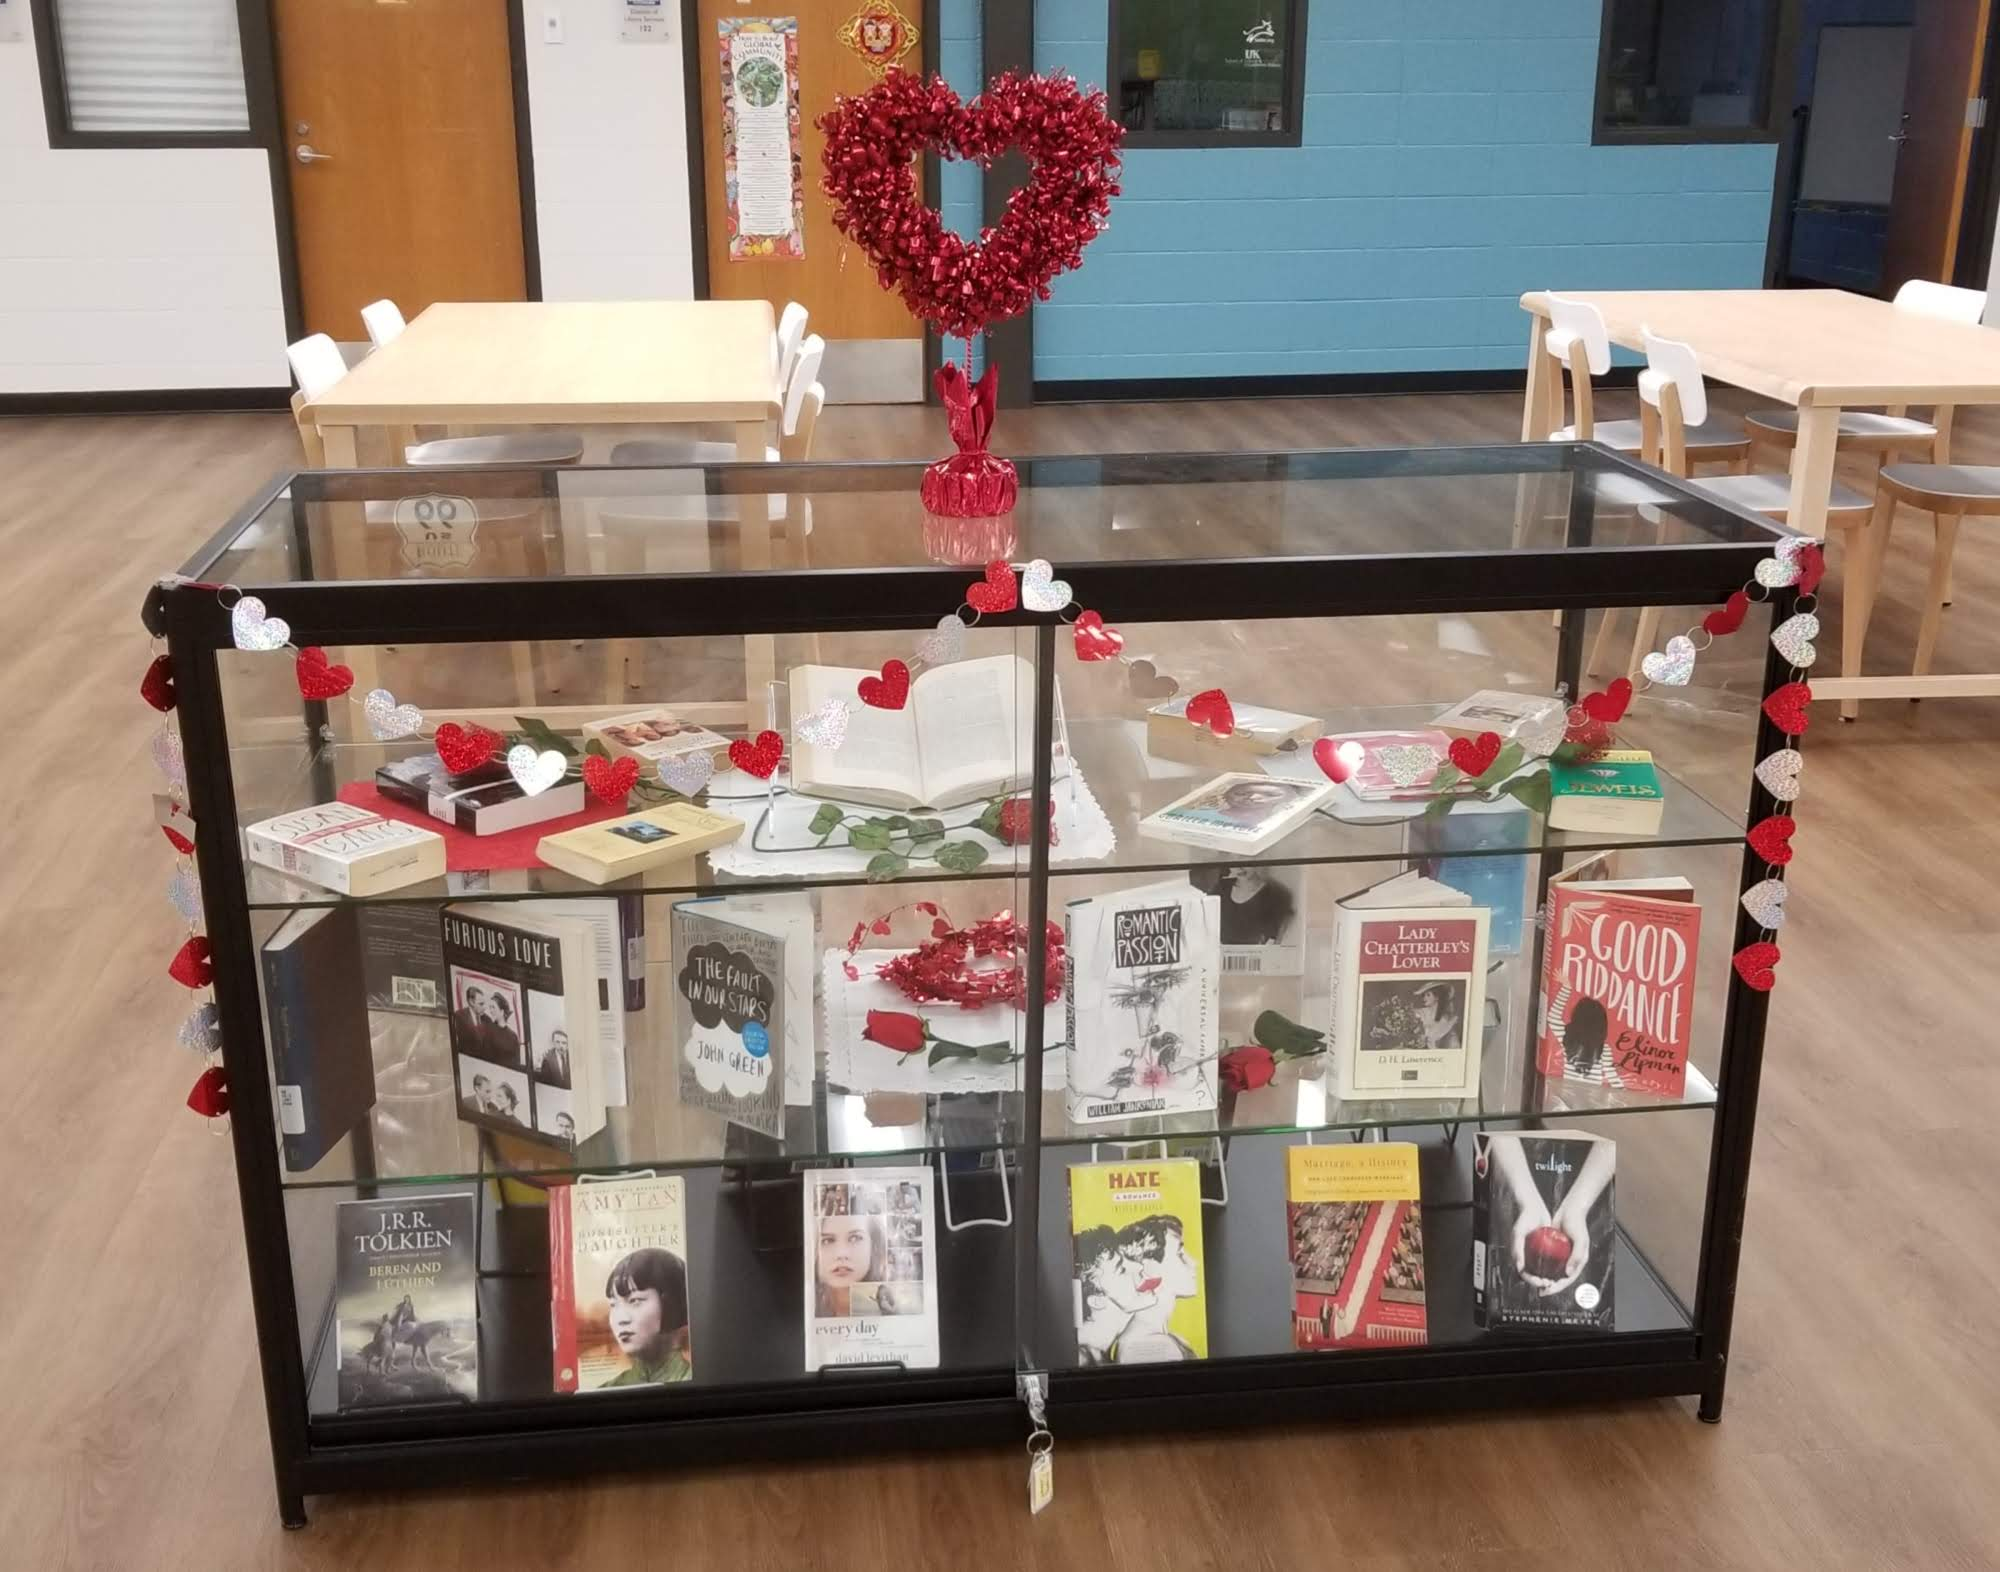 Library Display featuring books on love